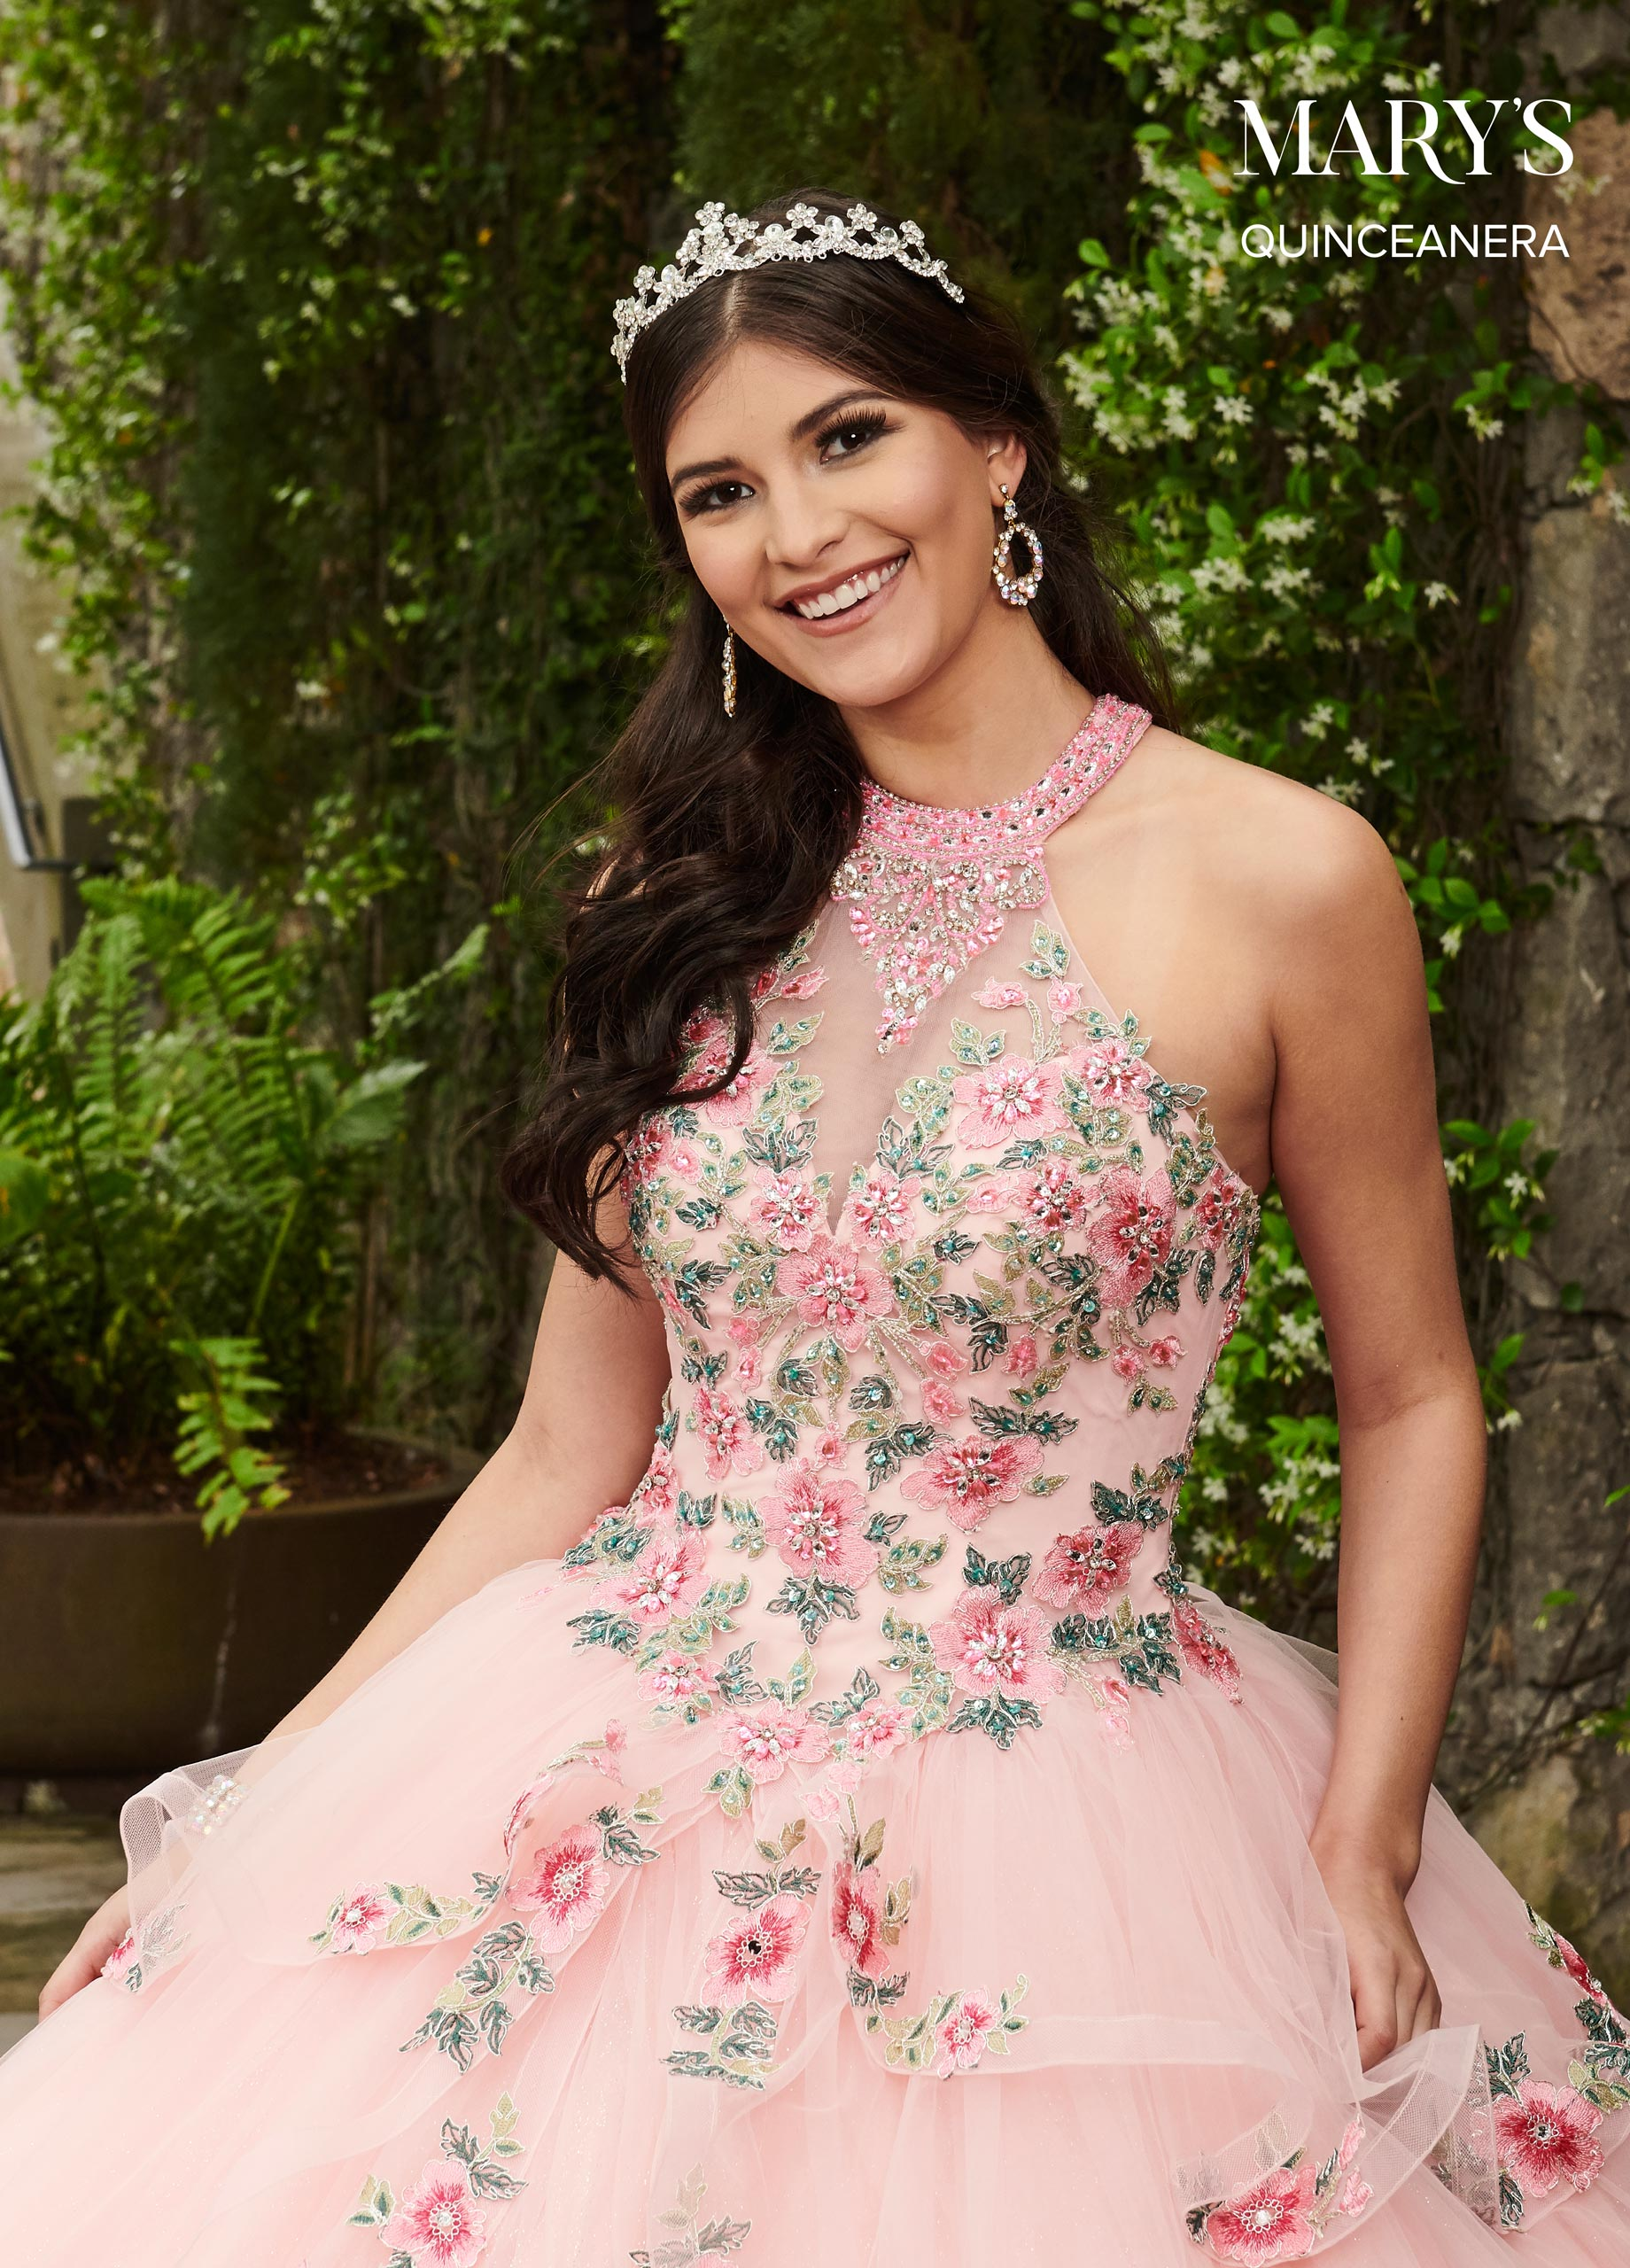 Marys Quinceanera Dresses | Mary's Quinceanera | Style - MQ1046